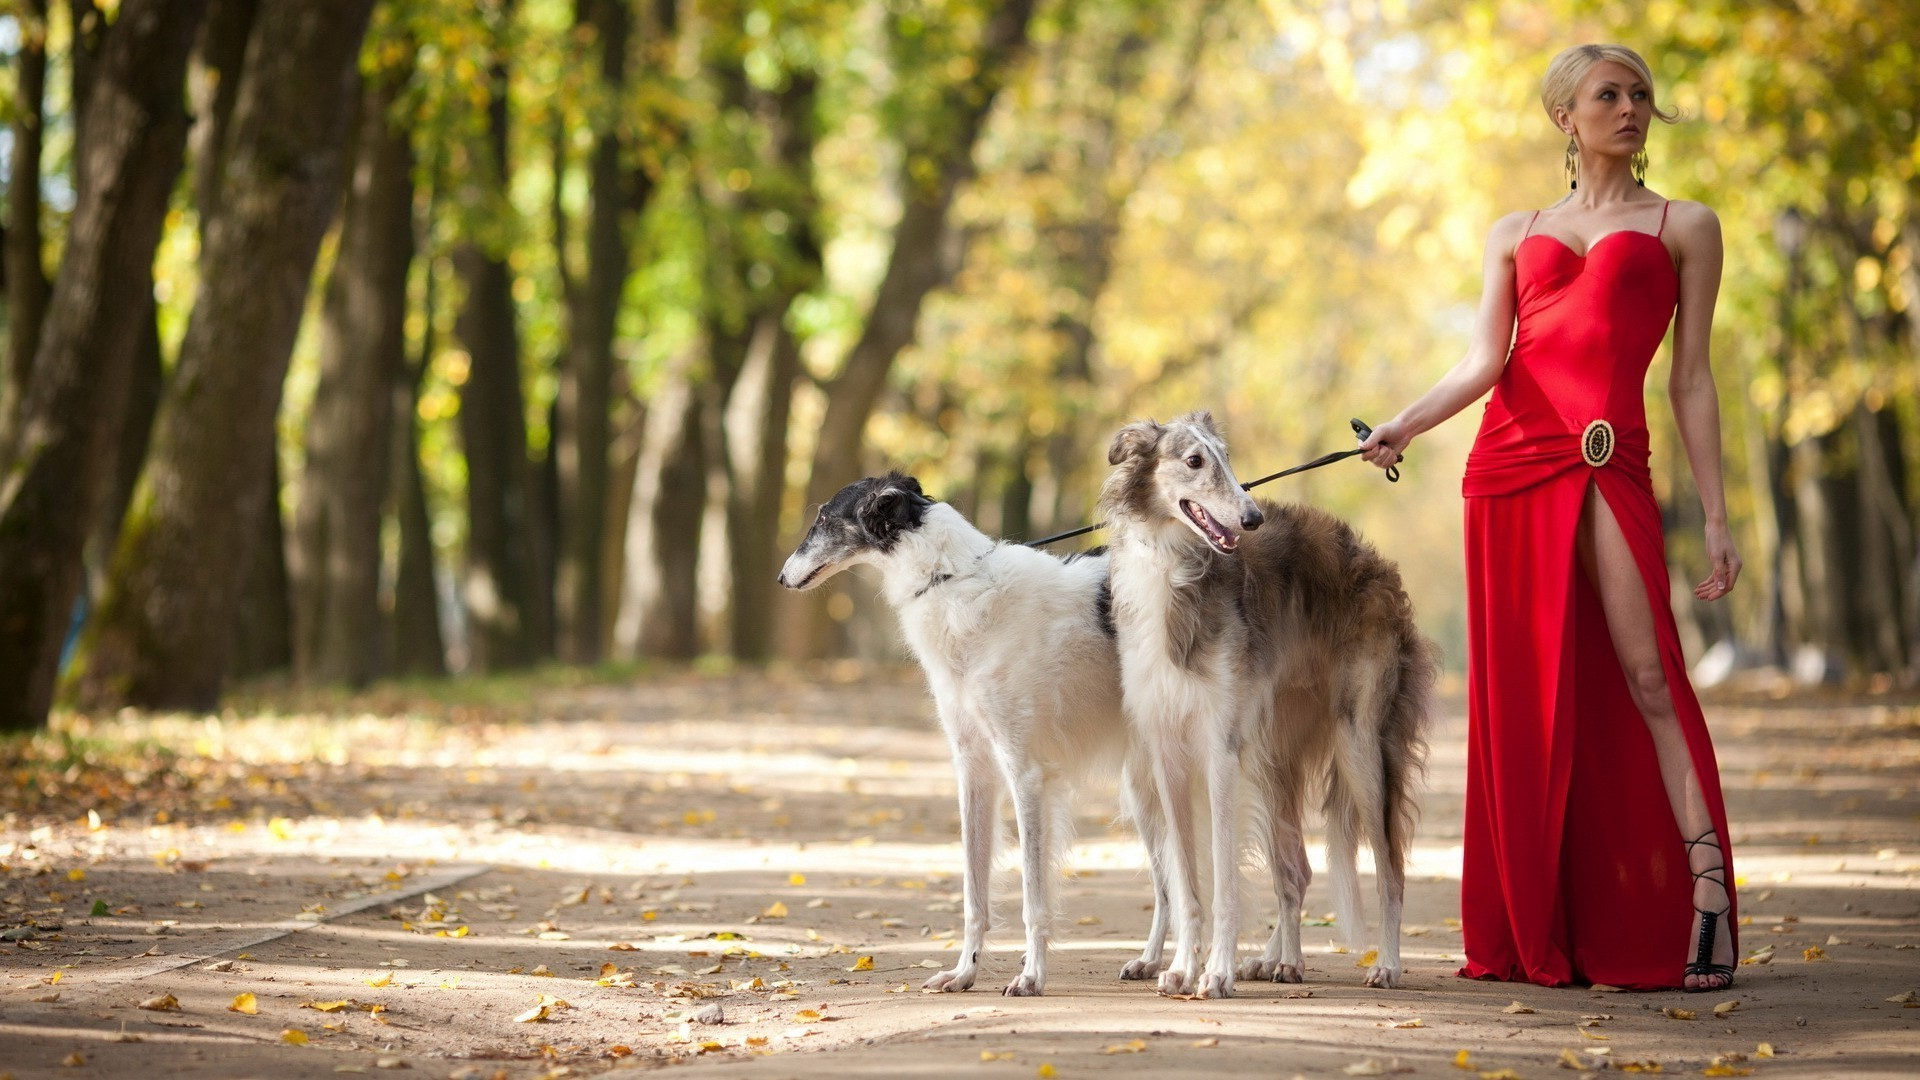 Russian Borzoi with a girl in a red